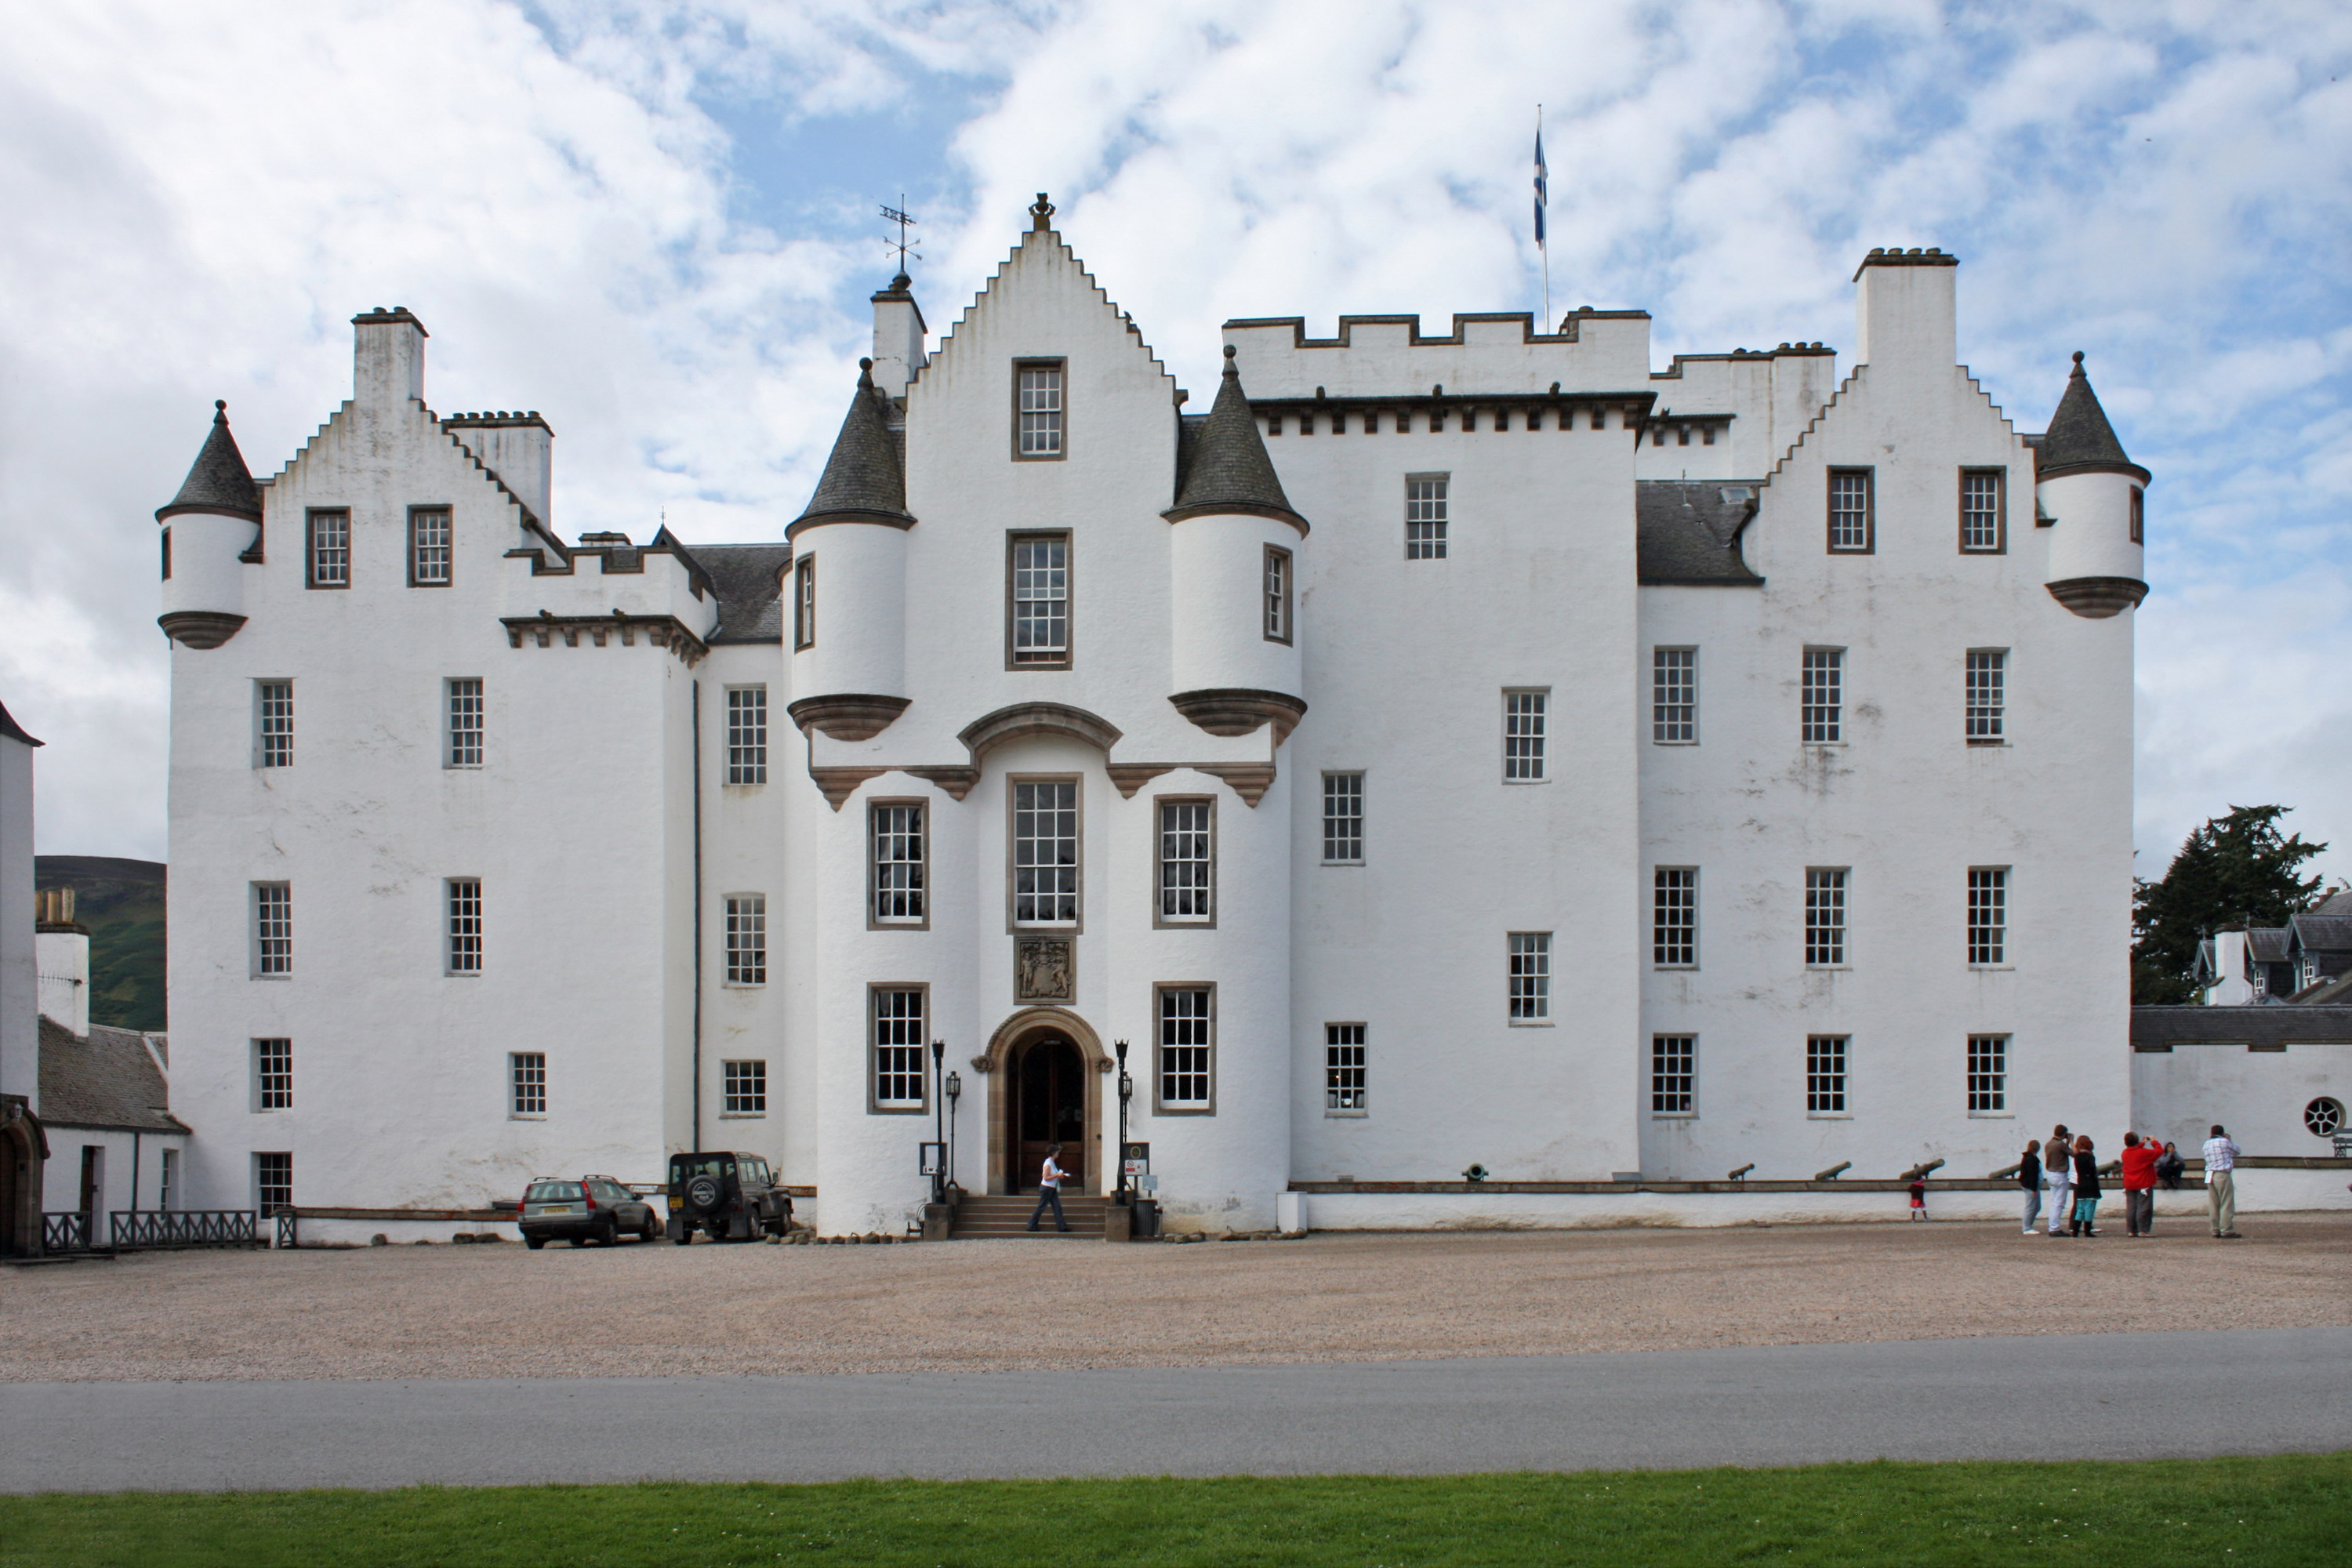 Blair Atholl United Kingdom  City pictures : Blair Castle Blair Atholl, United Kingdom